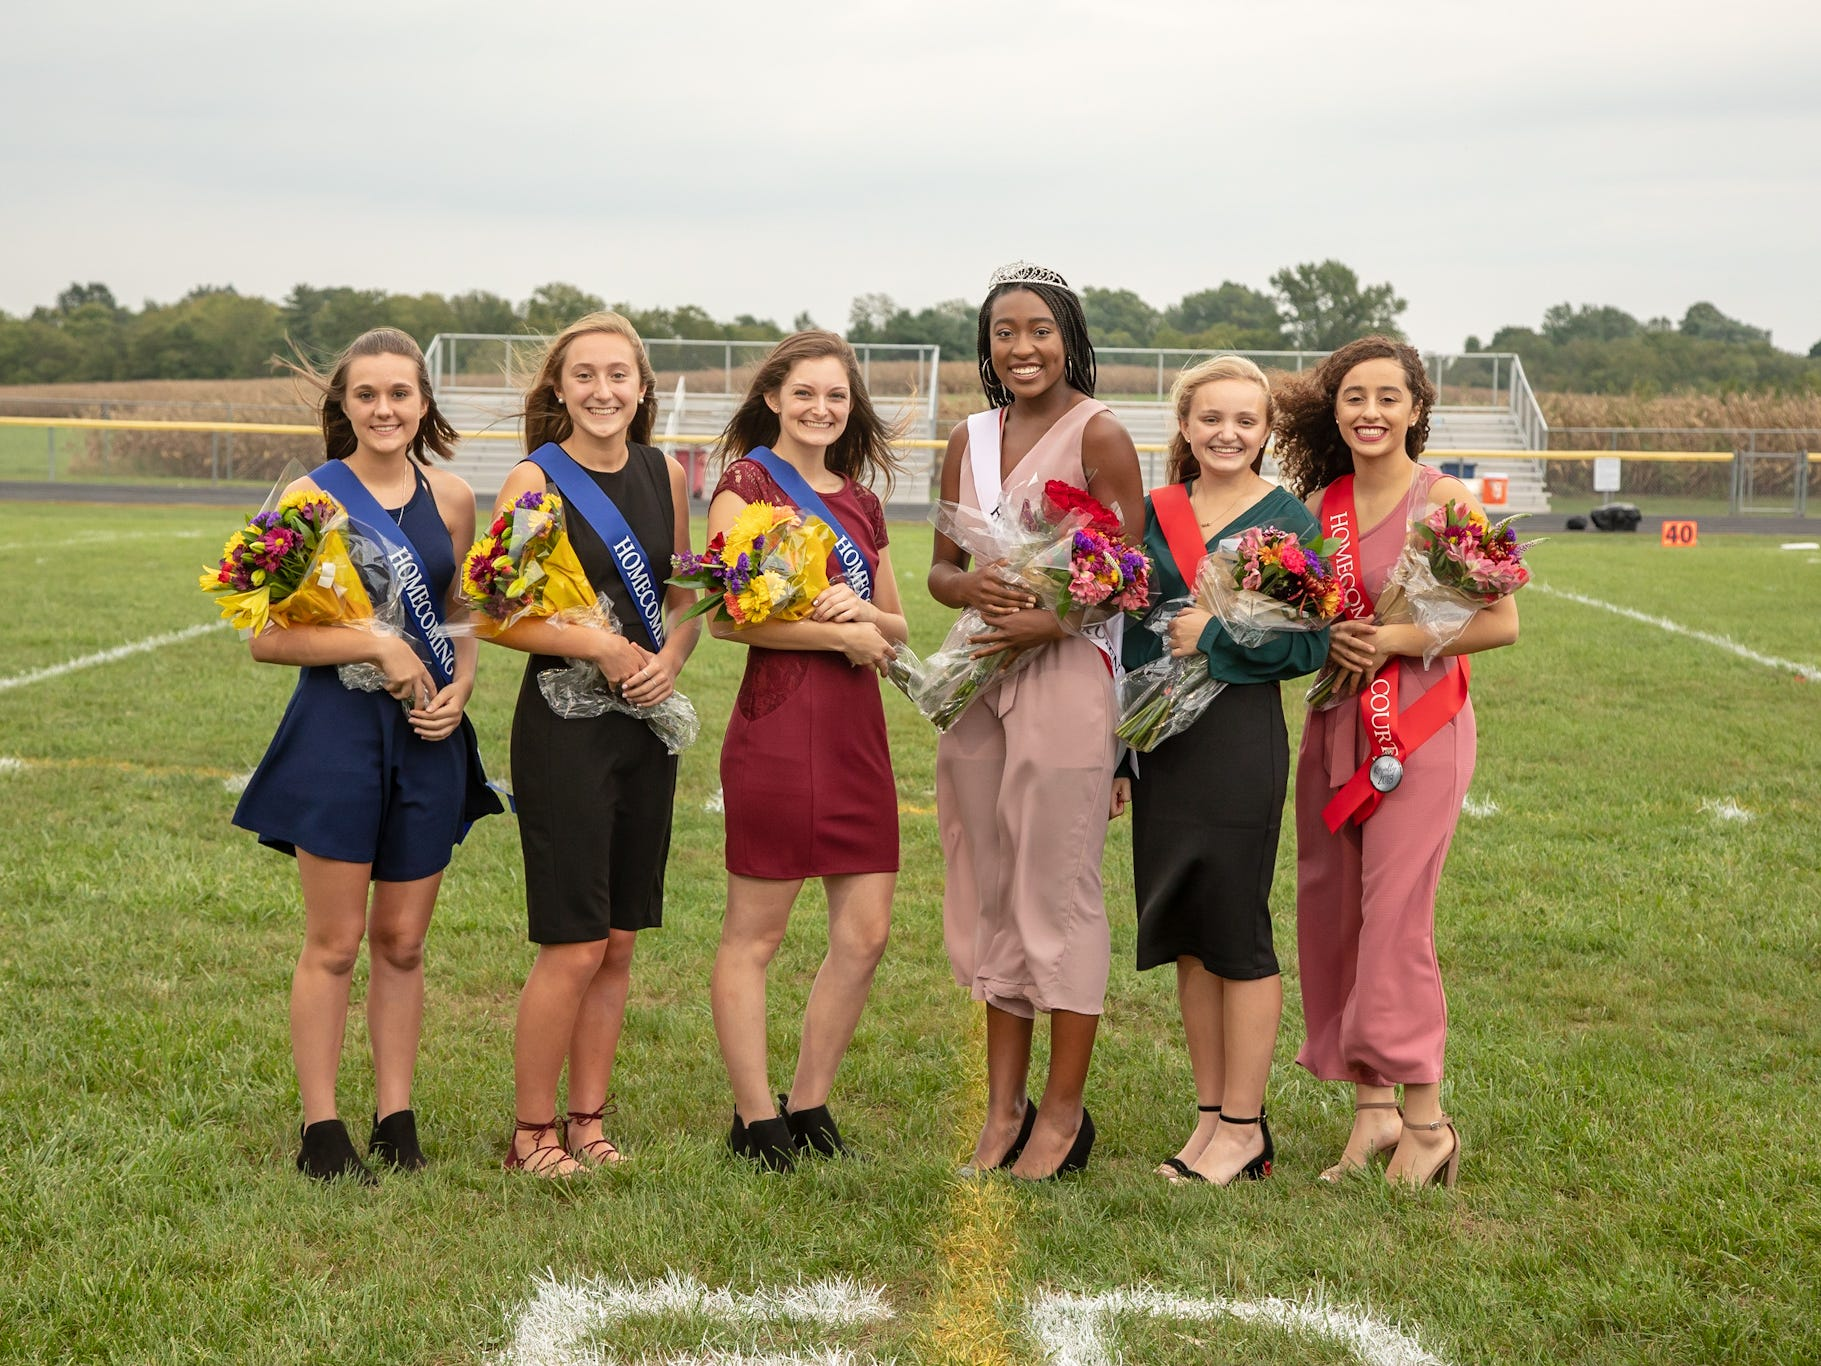 Fairfield Christian Academy crowned it's homecoming queen Friday night, Sept. 21, 2018, at Millersport High School in Millersport. Pictured from left to right are: sophomore attendant Margaret Roberts, freshman attendant Sophia Kumler, junior attendant Skylar Allen, FCA 2018 Homecoming Queen Mamme Adu, senior attendant Cassie Thompson and senior attendant Celeste Mershimer.